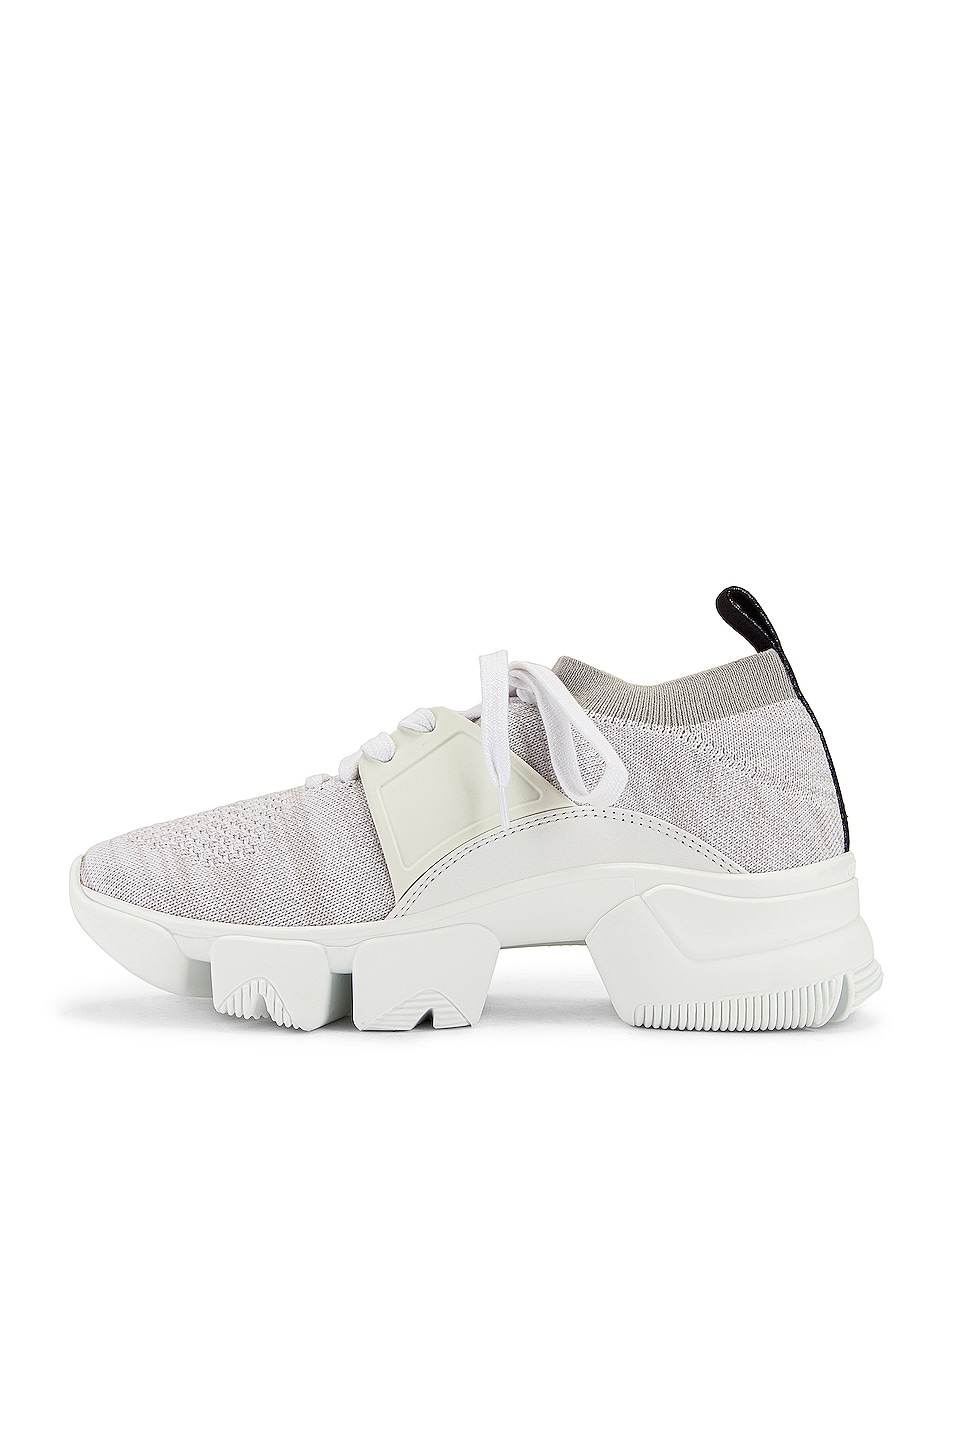 Image 5 of Givenchy Jaw Low Sock Sneakers in White